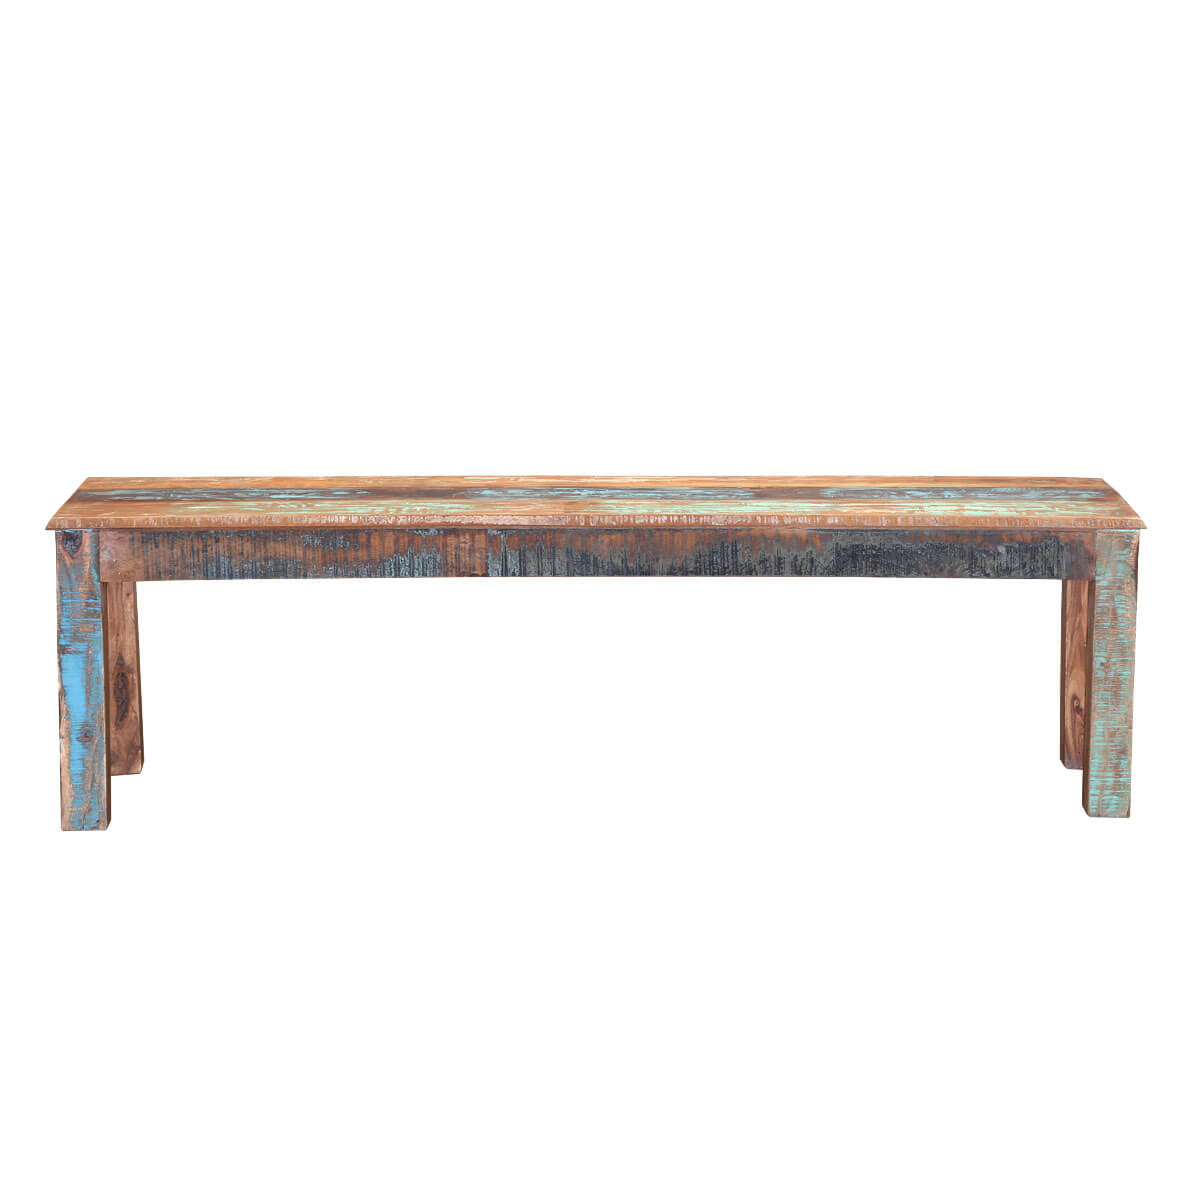 ... Rustic Colors 62 Reclaimed Wood Backless Dining Bench ... - Rustic Colors 62